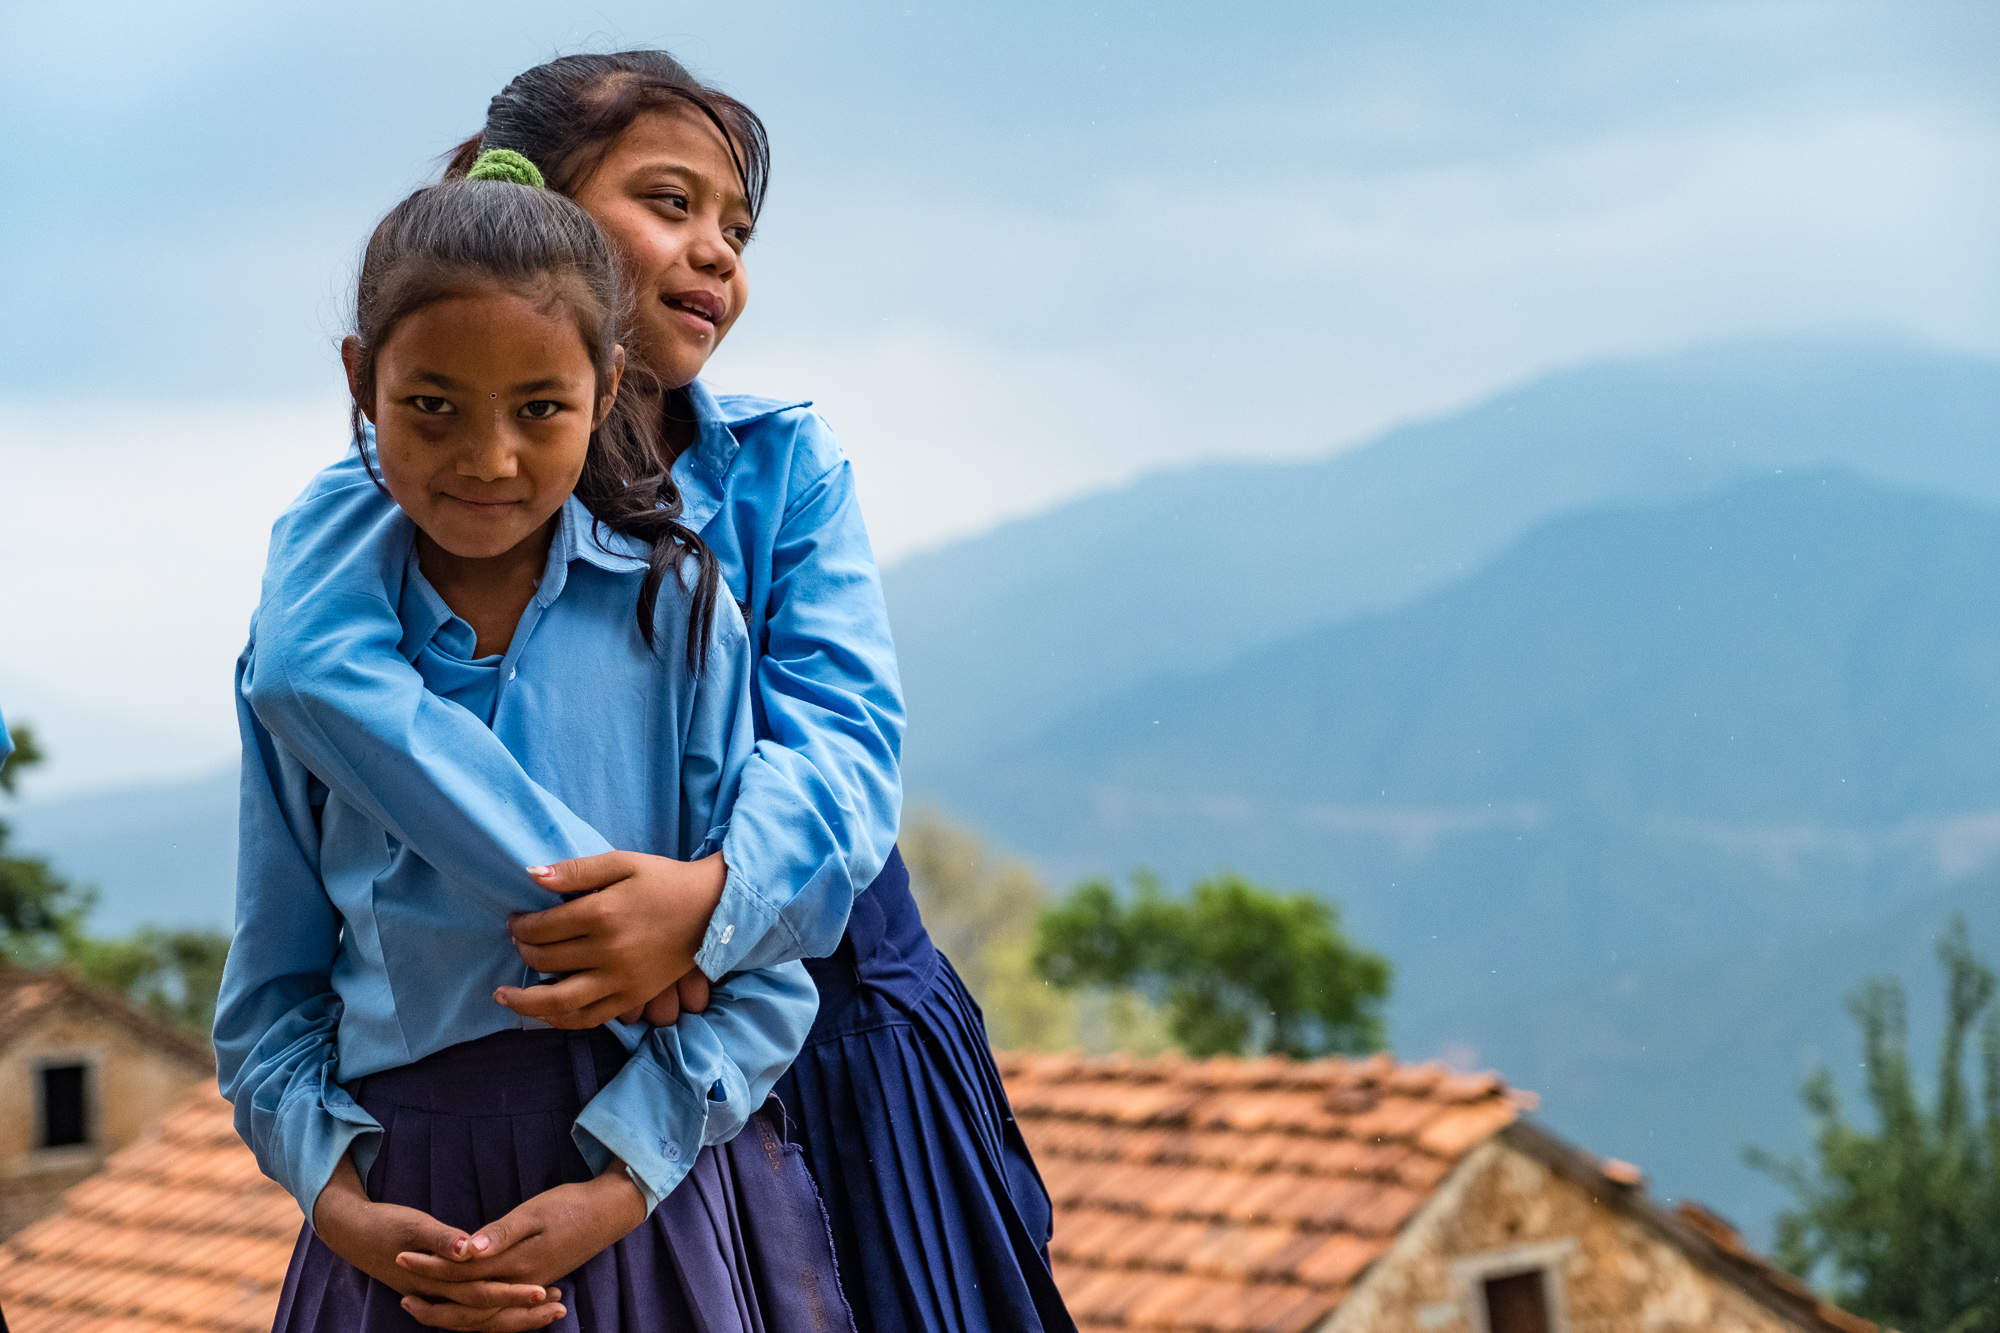 Fundraisng for Kids of Kathamdu also helped build schools devastated by the earthquake in Nepal